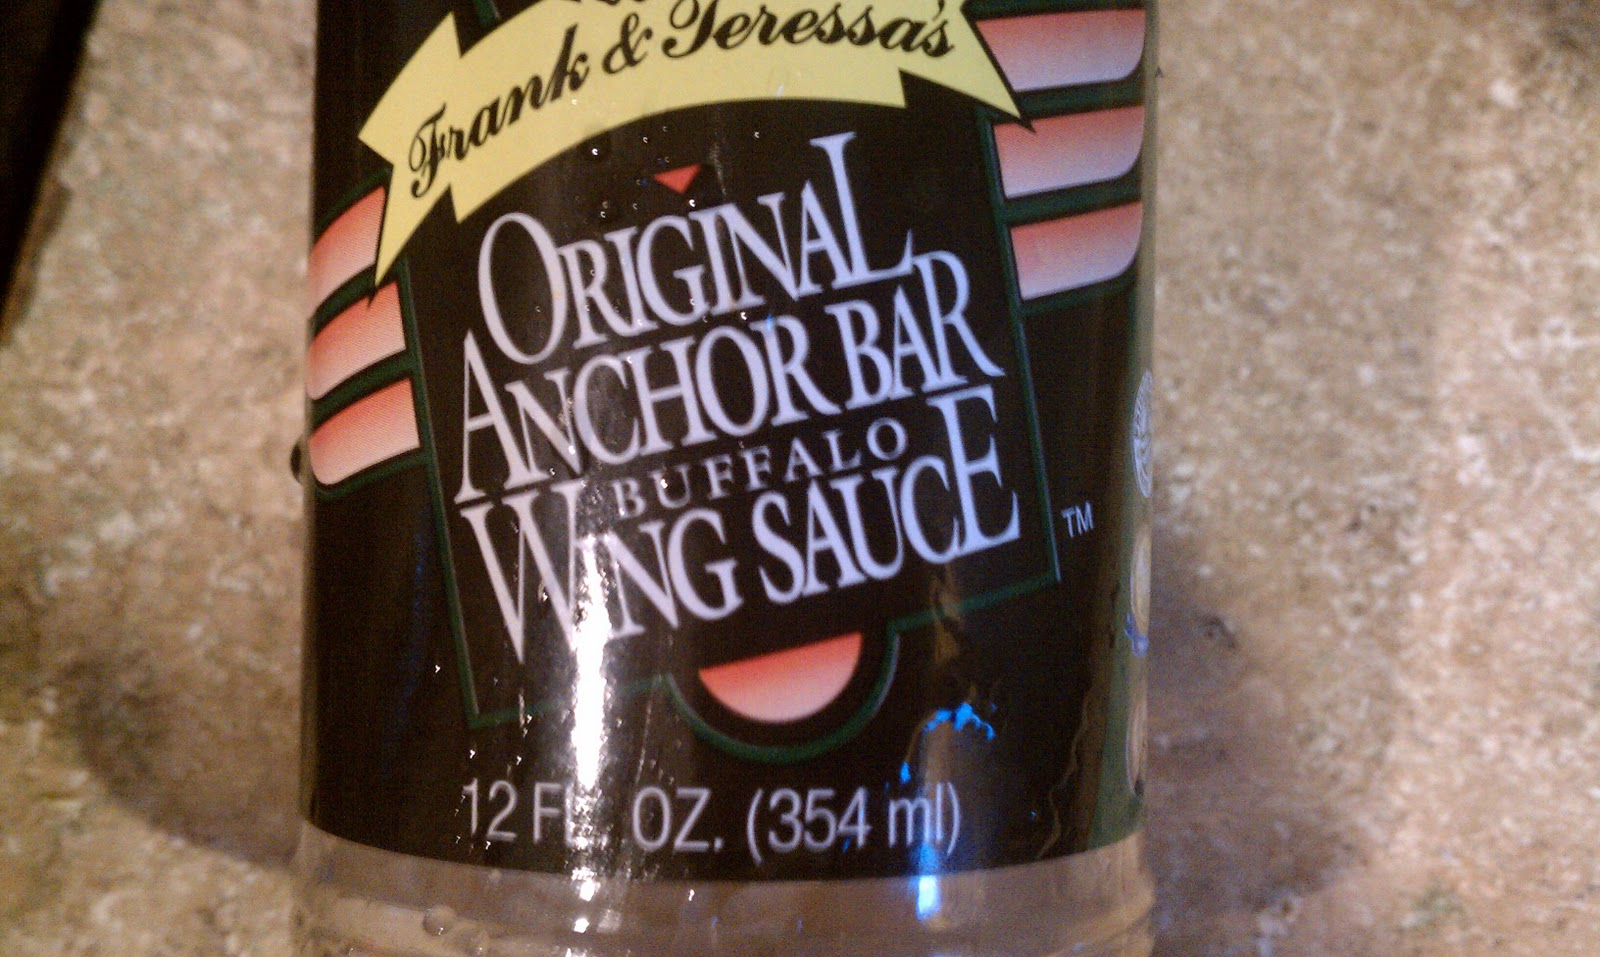 In Terms Of Starting Inspiration Doug Had About Half A Bottle Of Original Anchor Bar Buffalo Wing Sauce Anchor Bar Is The Restaurant In Buffalo Which